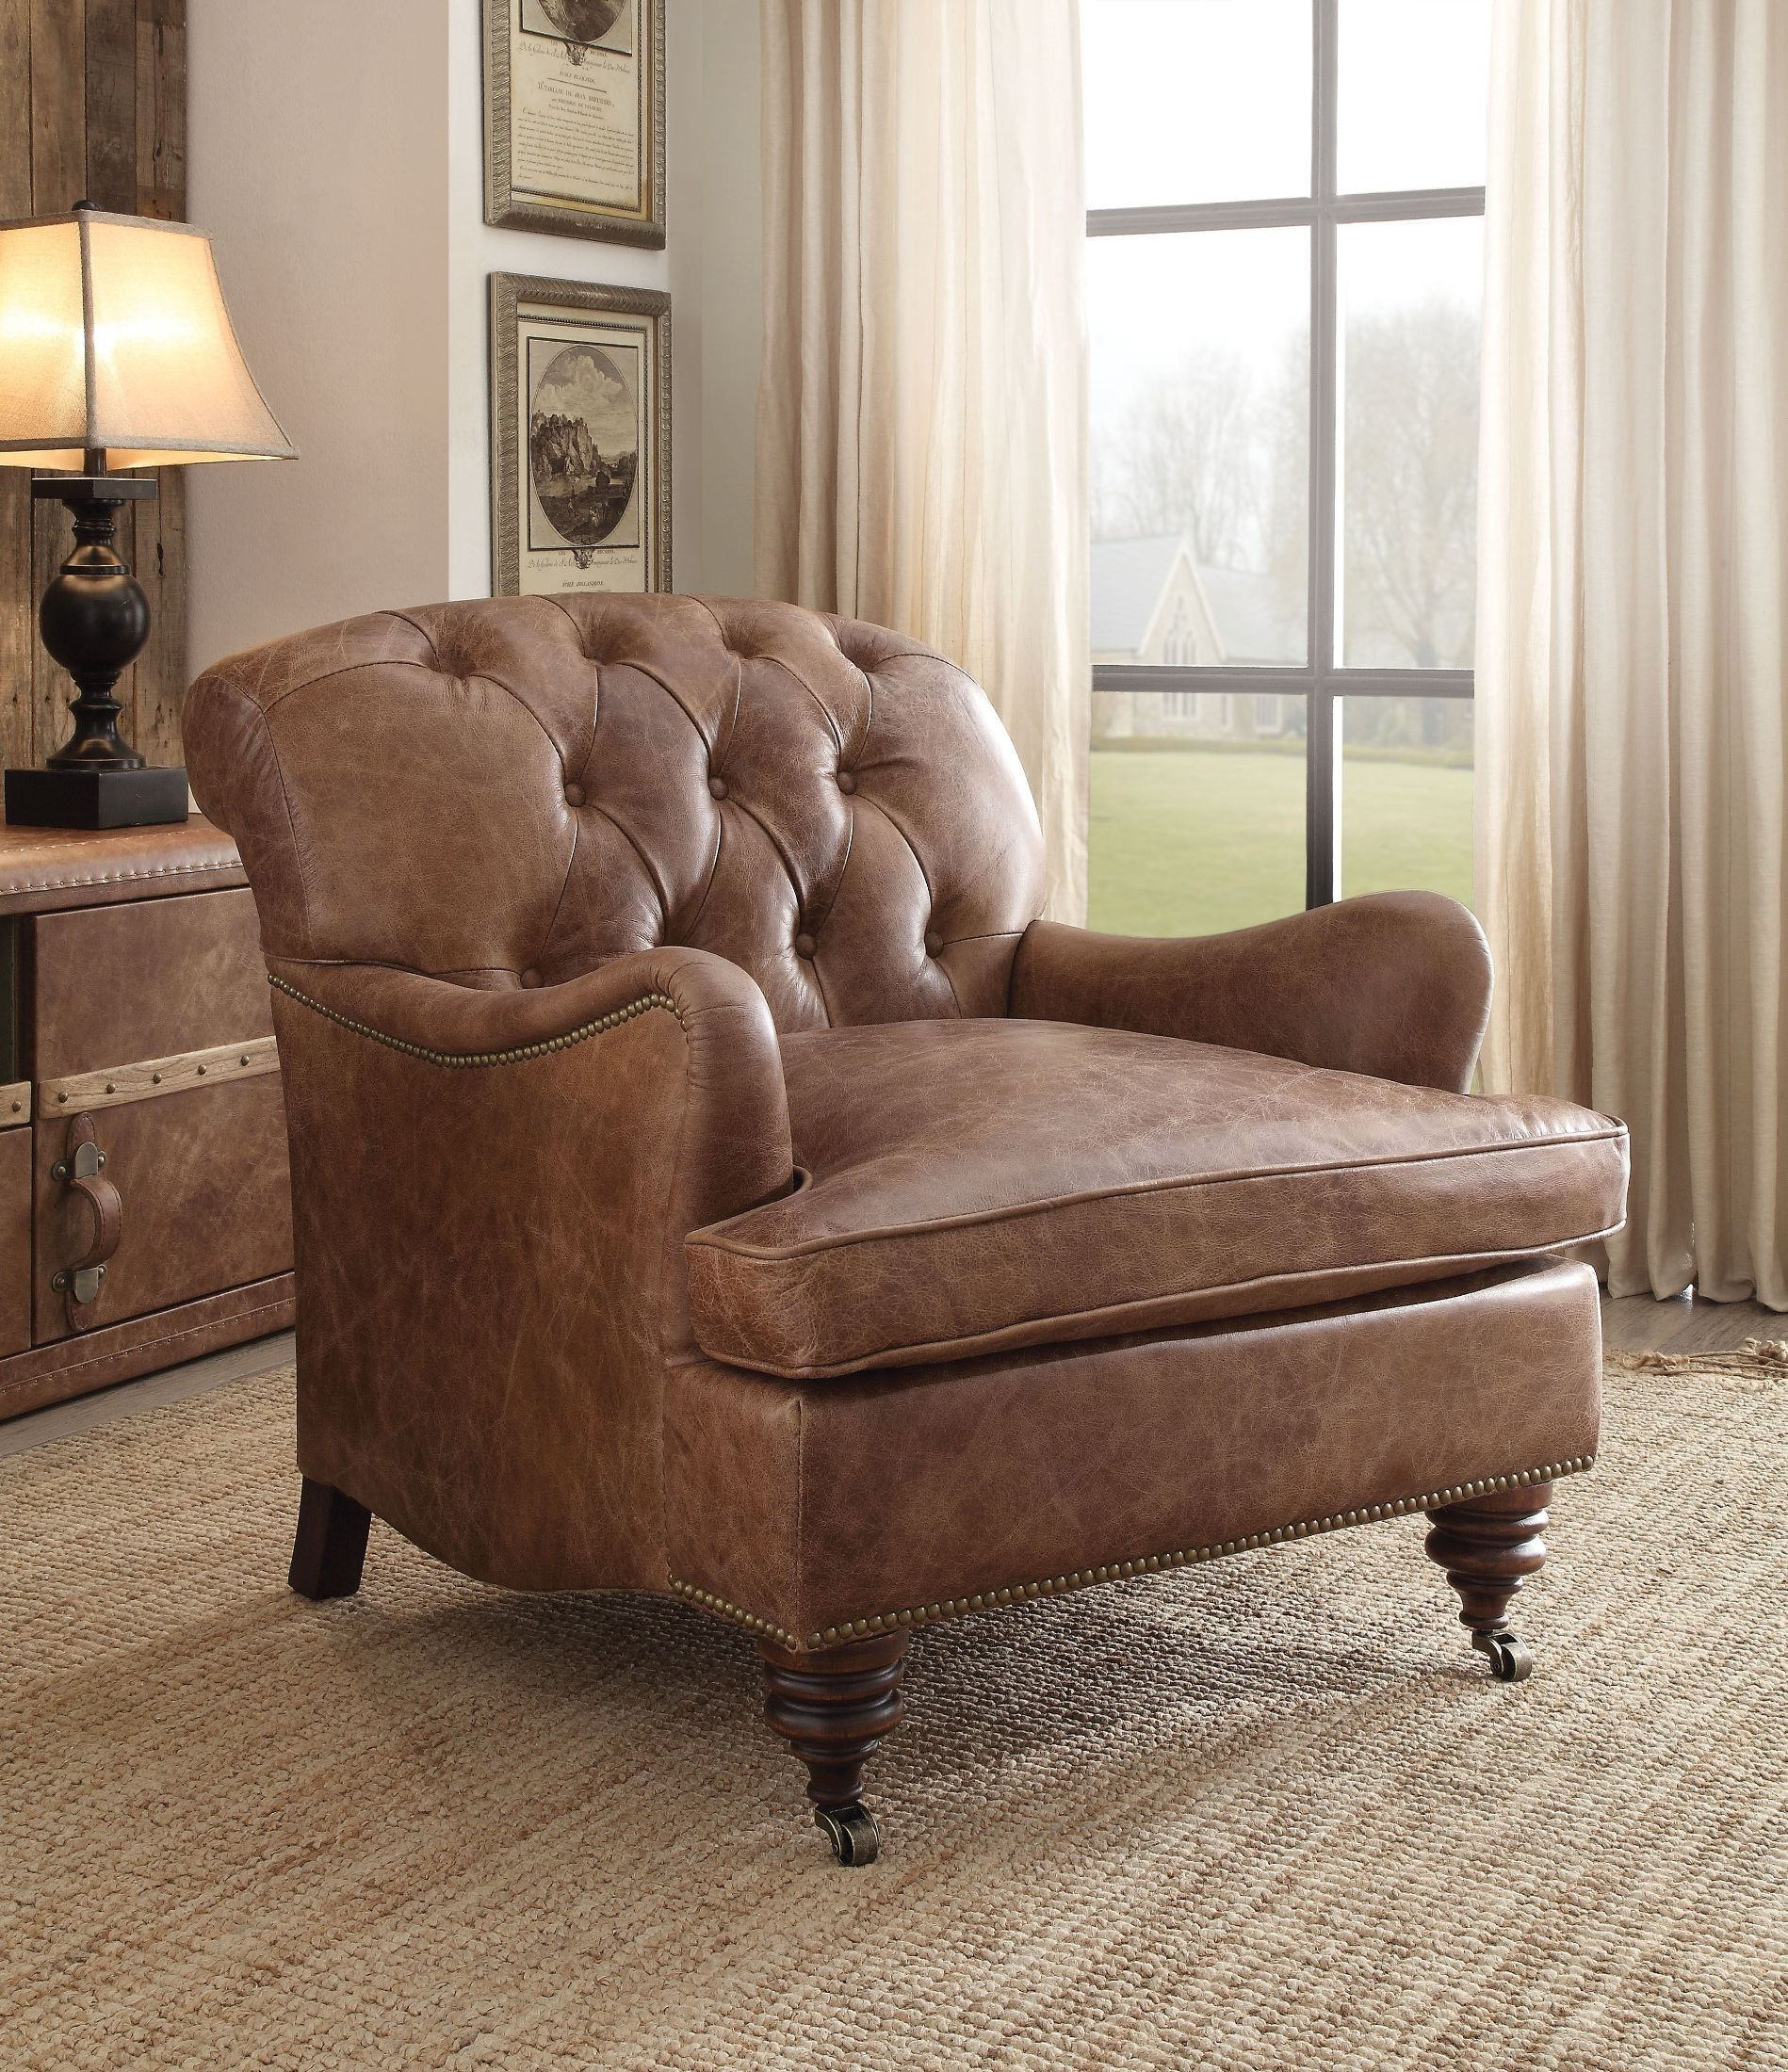 Best Durham Retro Brown Leather Tufted Accent Chair In 2020 400 x 300